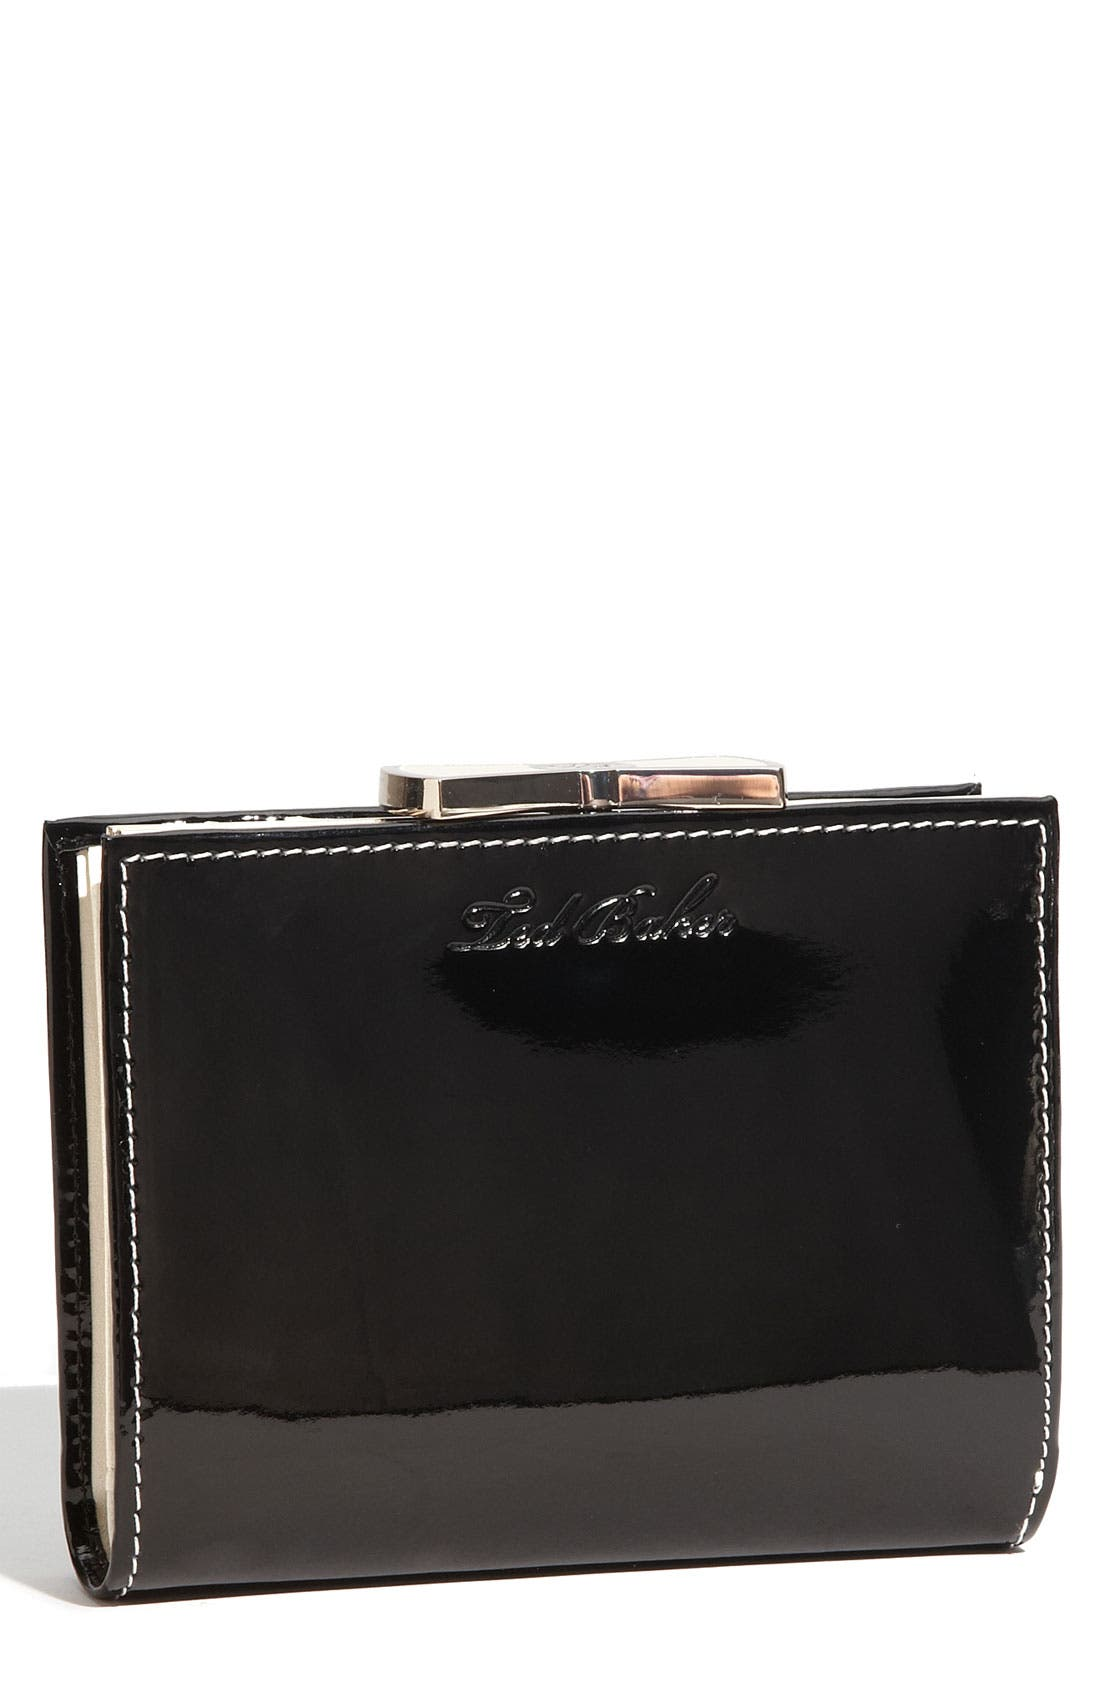 'Bow Clasp' French Wallet,                             Main thumbnail 1, color,                             002